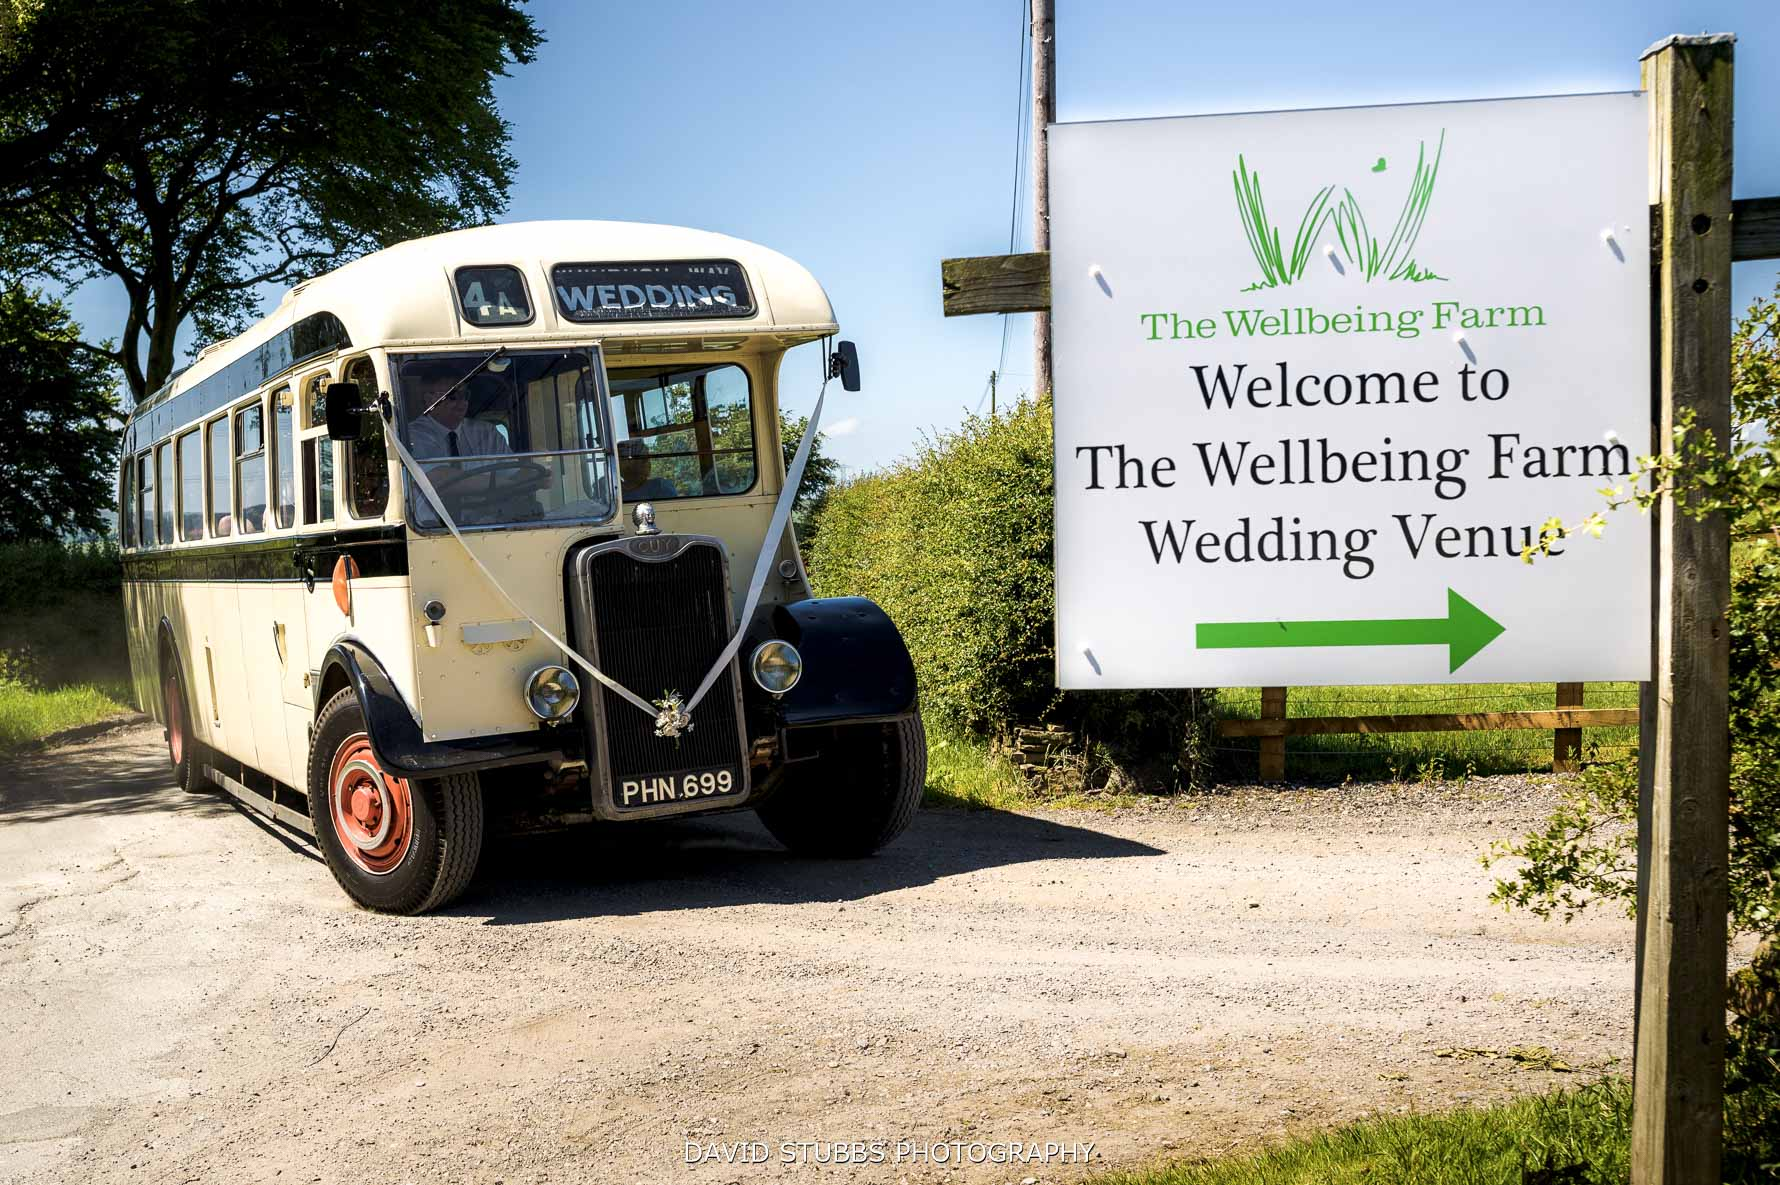 bus arriving at the farm with guests